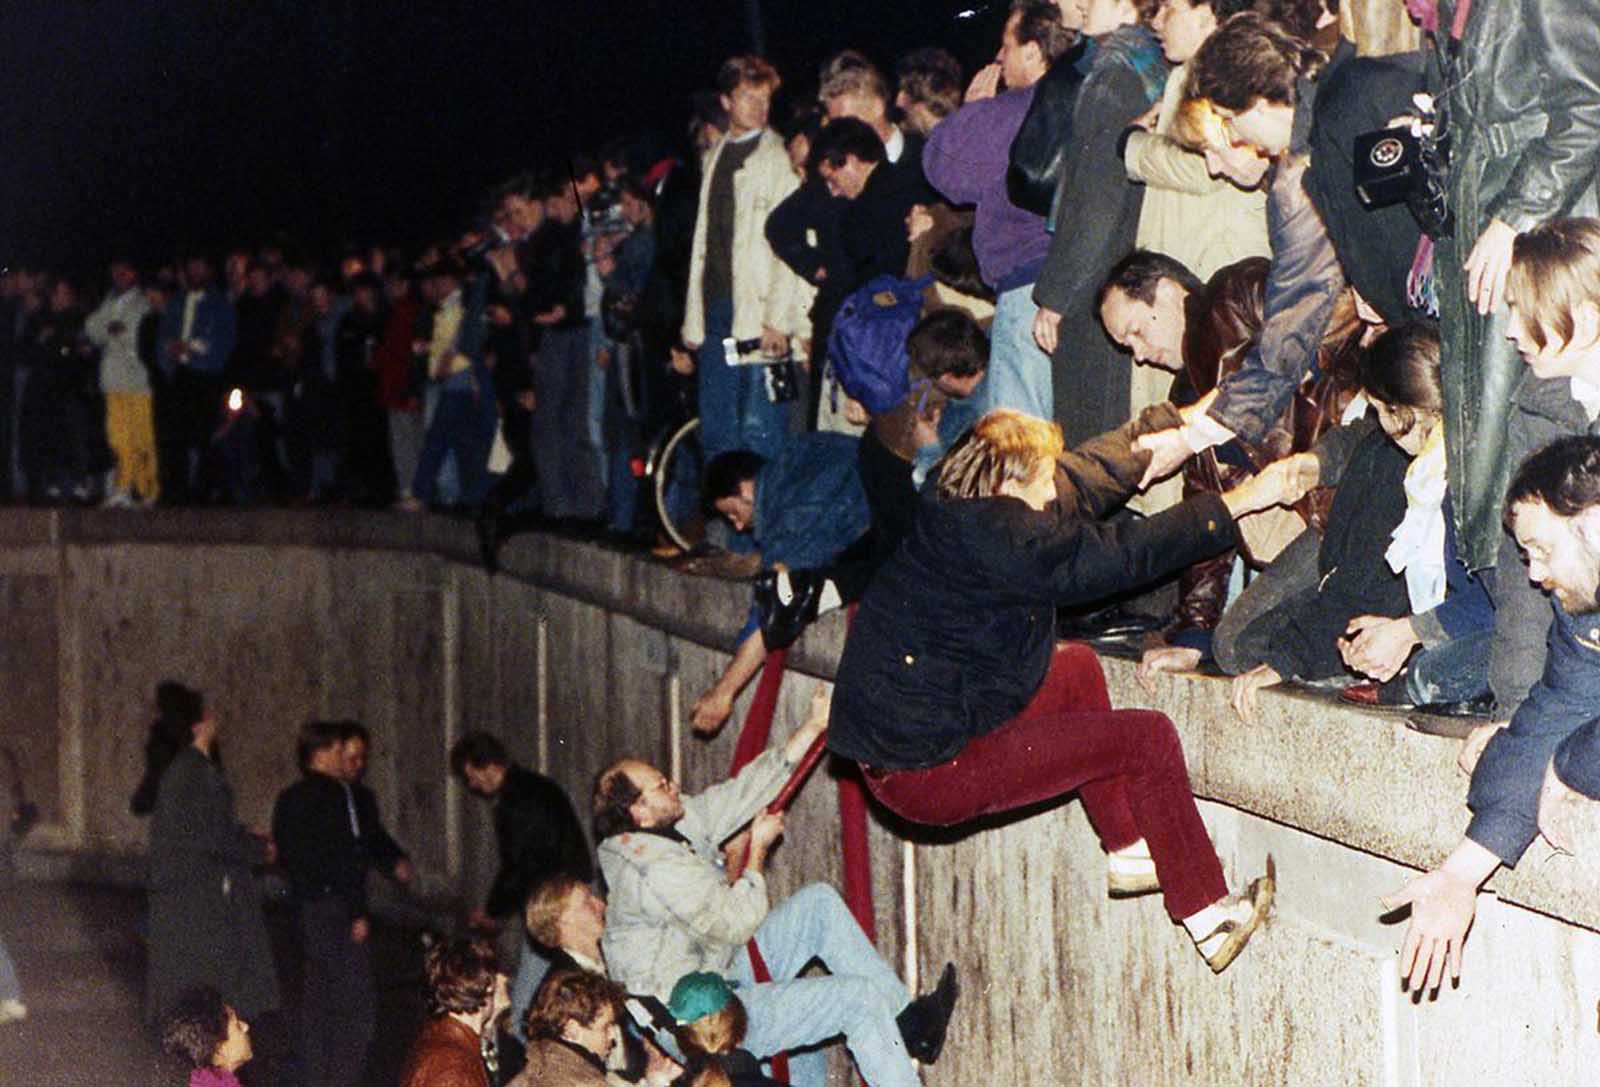 East Berliners get helping hands from West Berliners as they climb the Berlin Wall which divided the city for decades, near the Brandenburger Tor (Brandenburg Gate). Photo taken in the early hours of November 10, 1989.